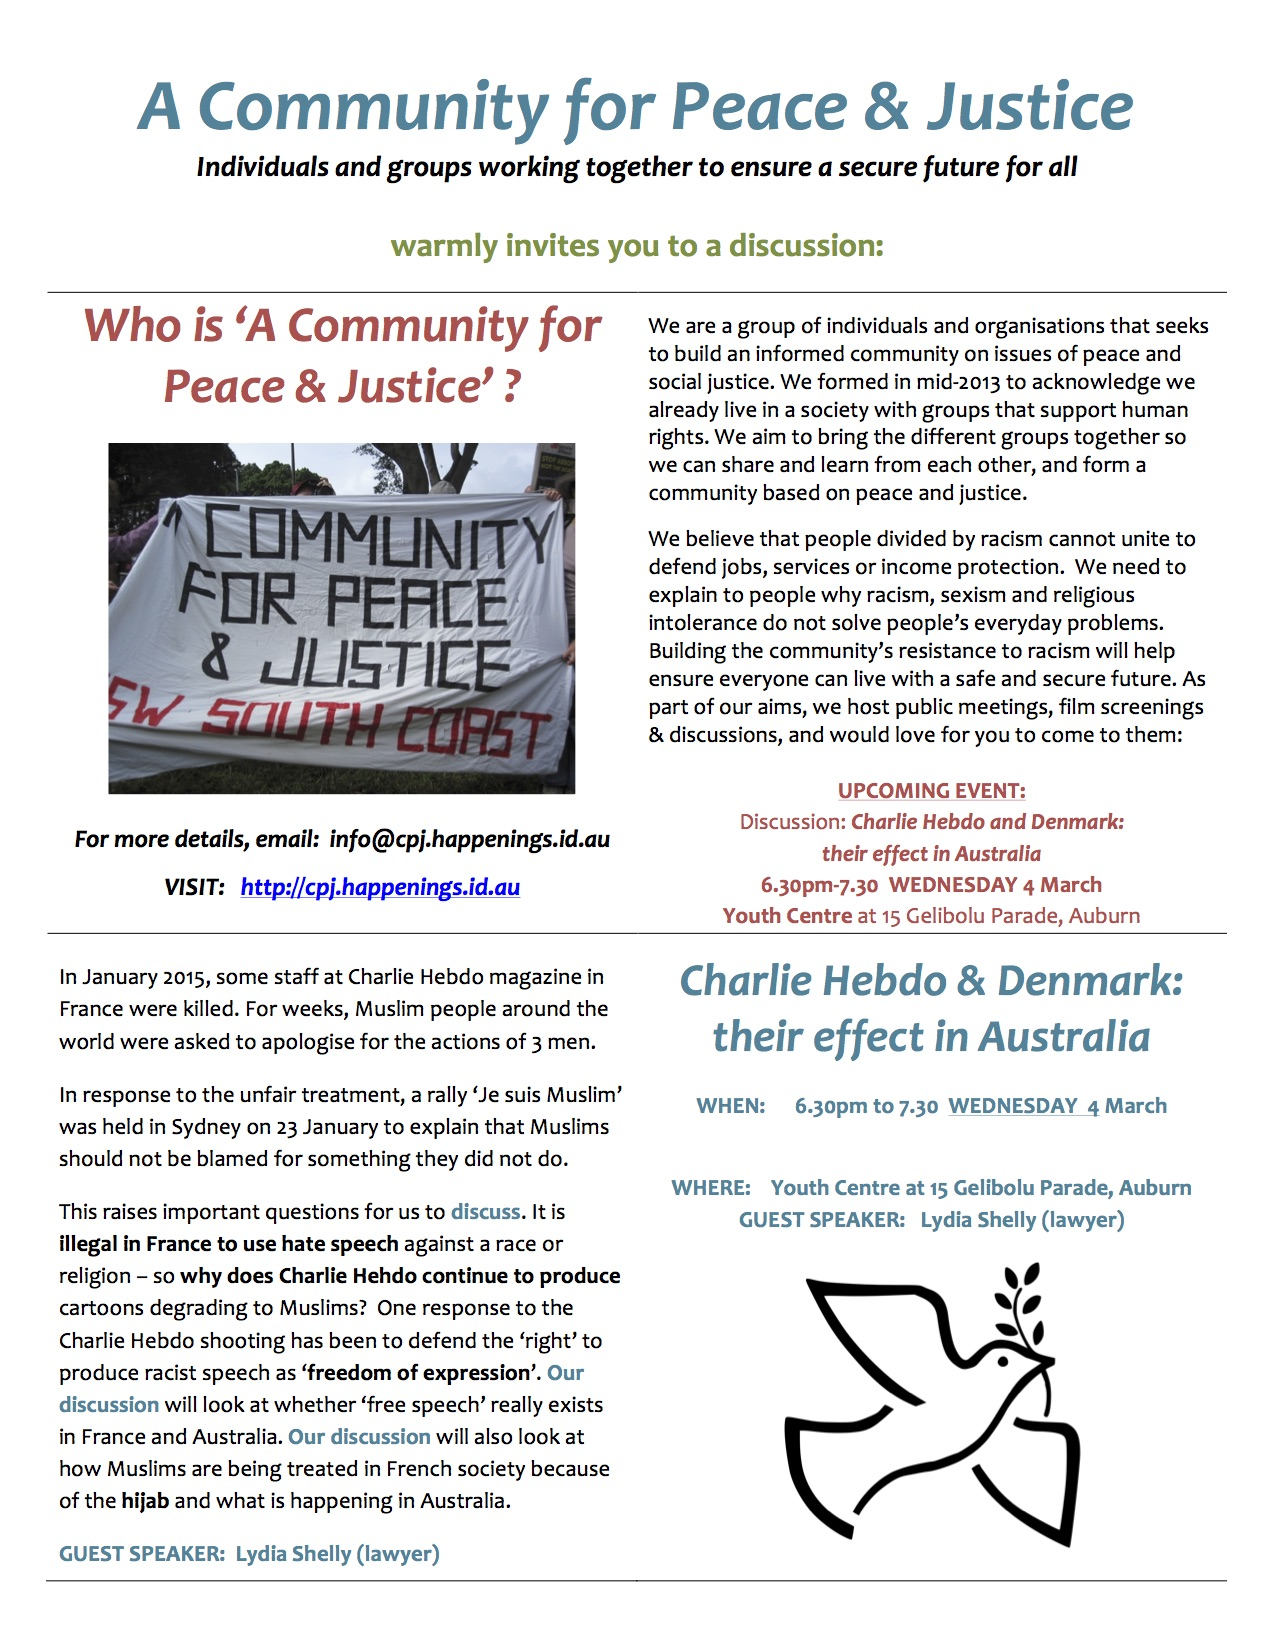 Auburn discussion on WED 4 March 2015